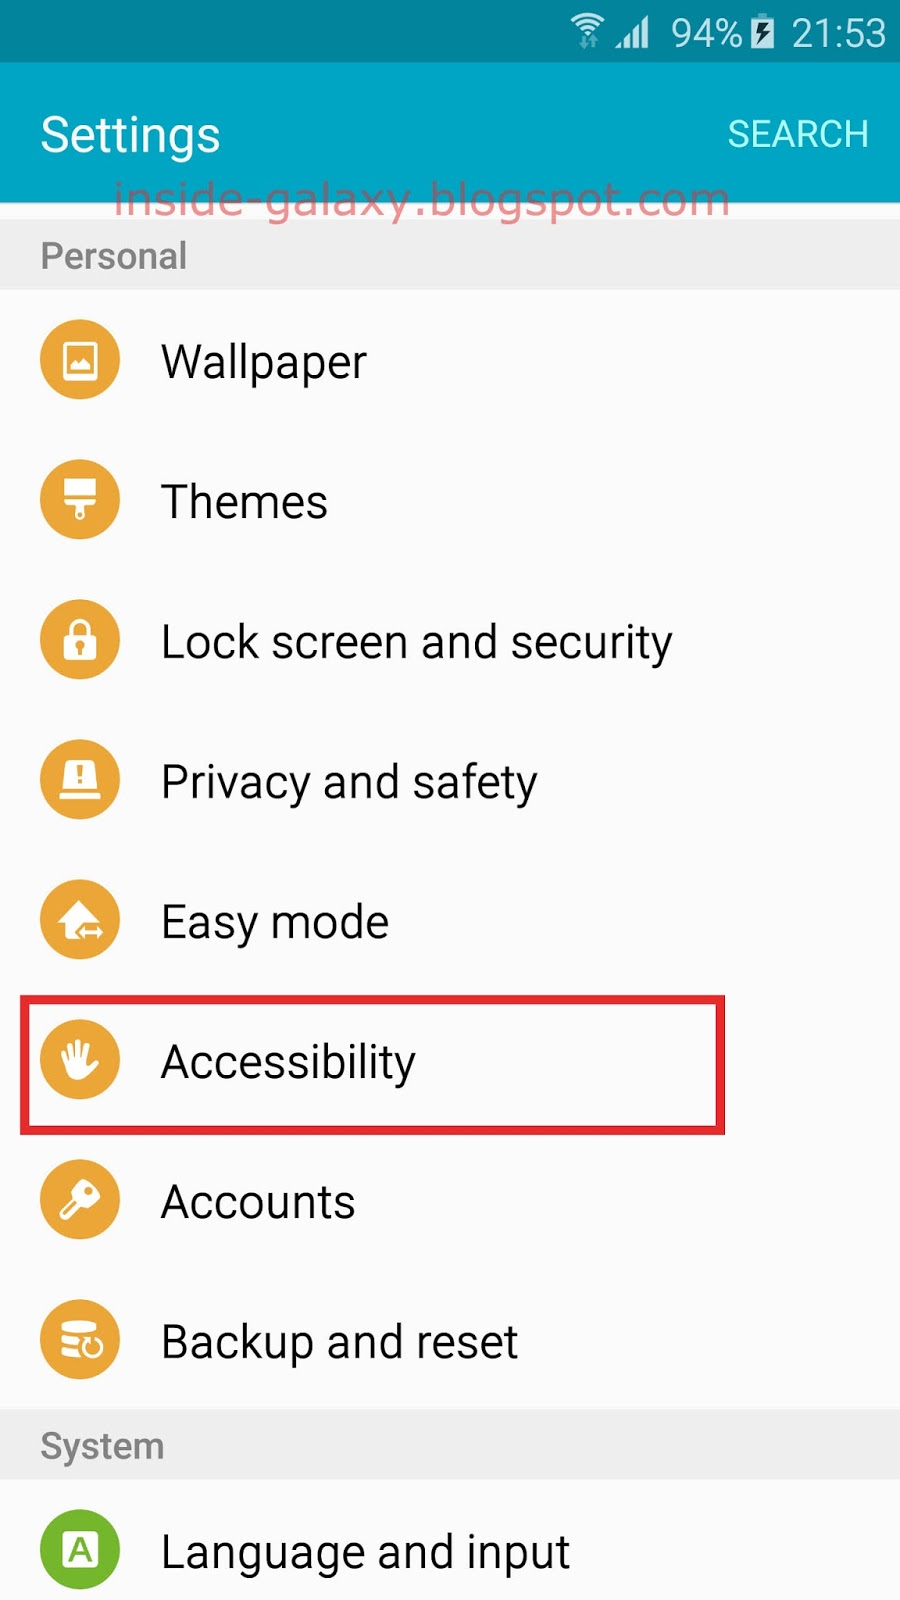 Samsung Galaxy S6 Edge How To Setup And Use Doorbell Detector In Hook Up A Scroll Down The Personal Section Then Tap Accessibility